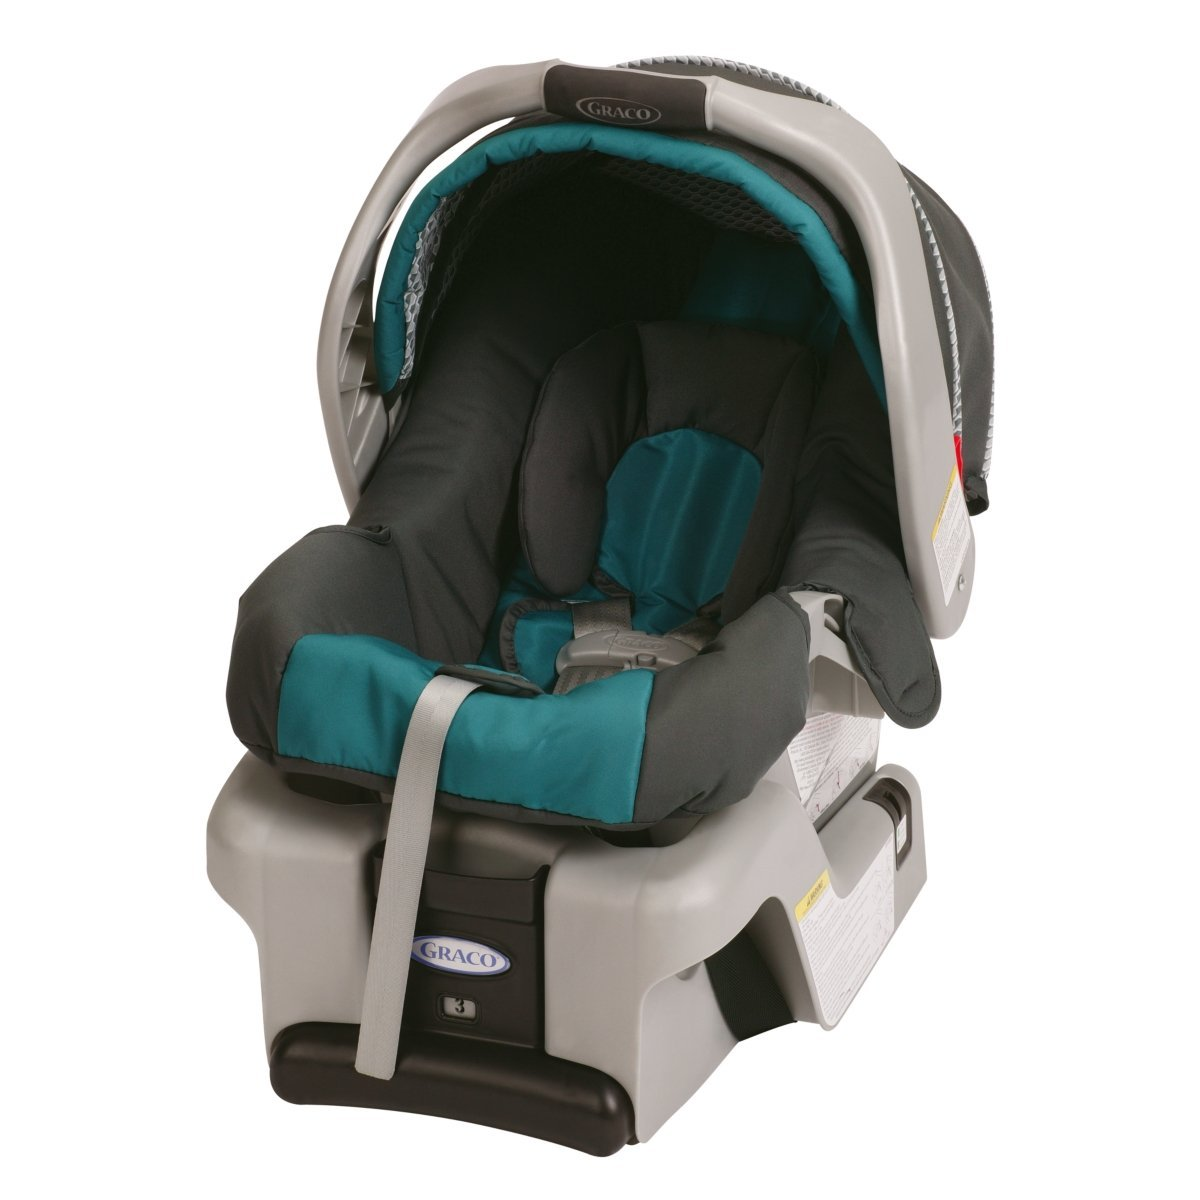 Using Old Baby Car Seats